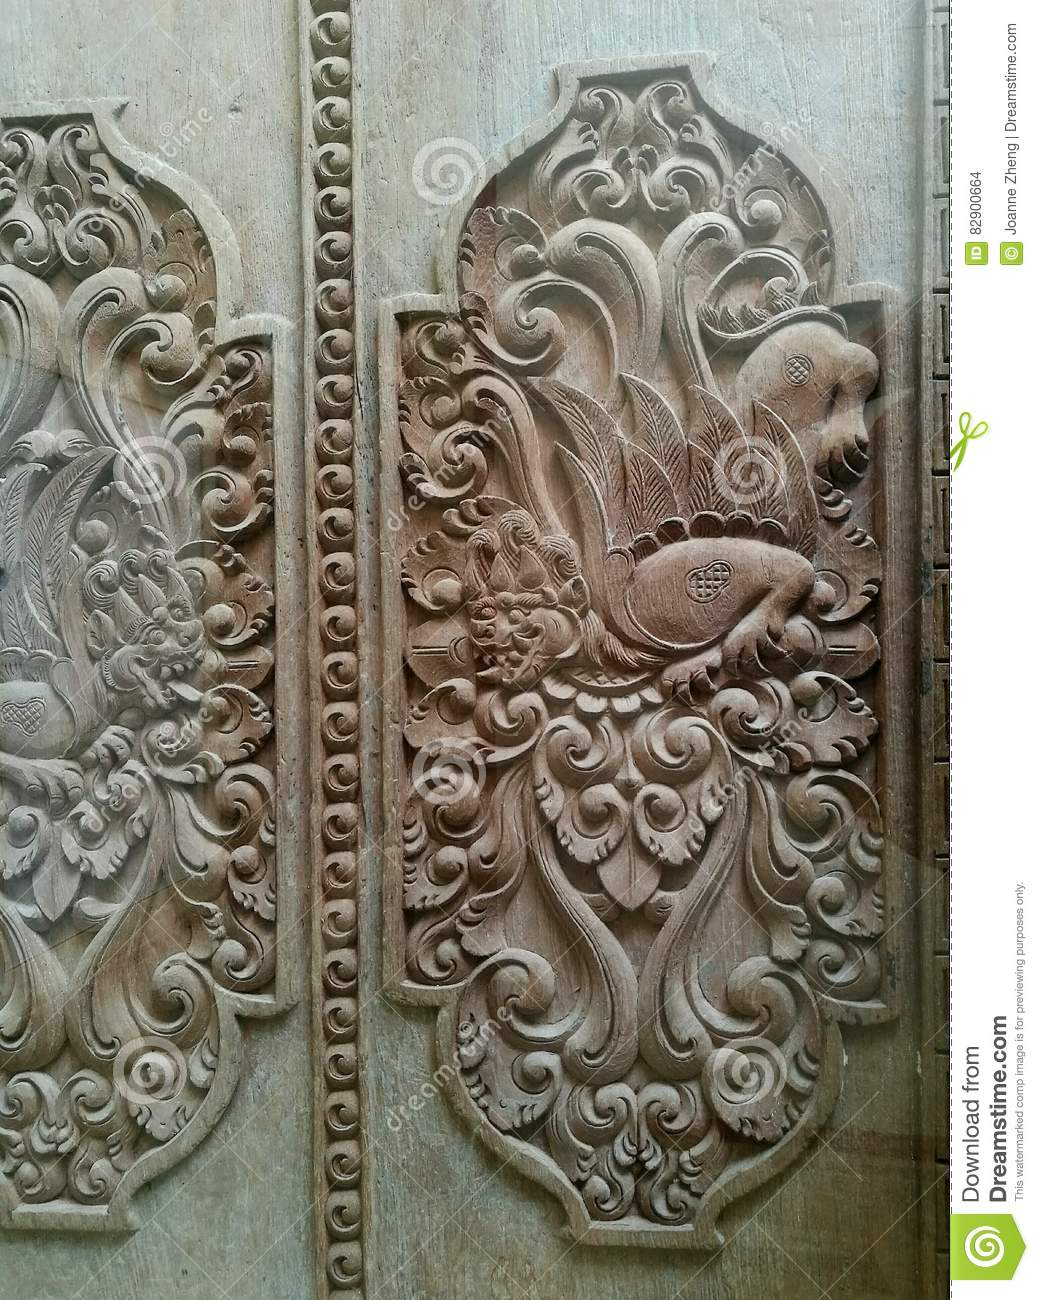 Balinese wood carving art ornate details stock photo